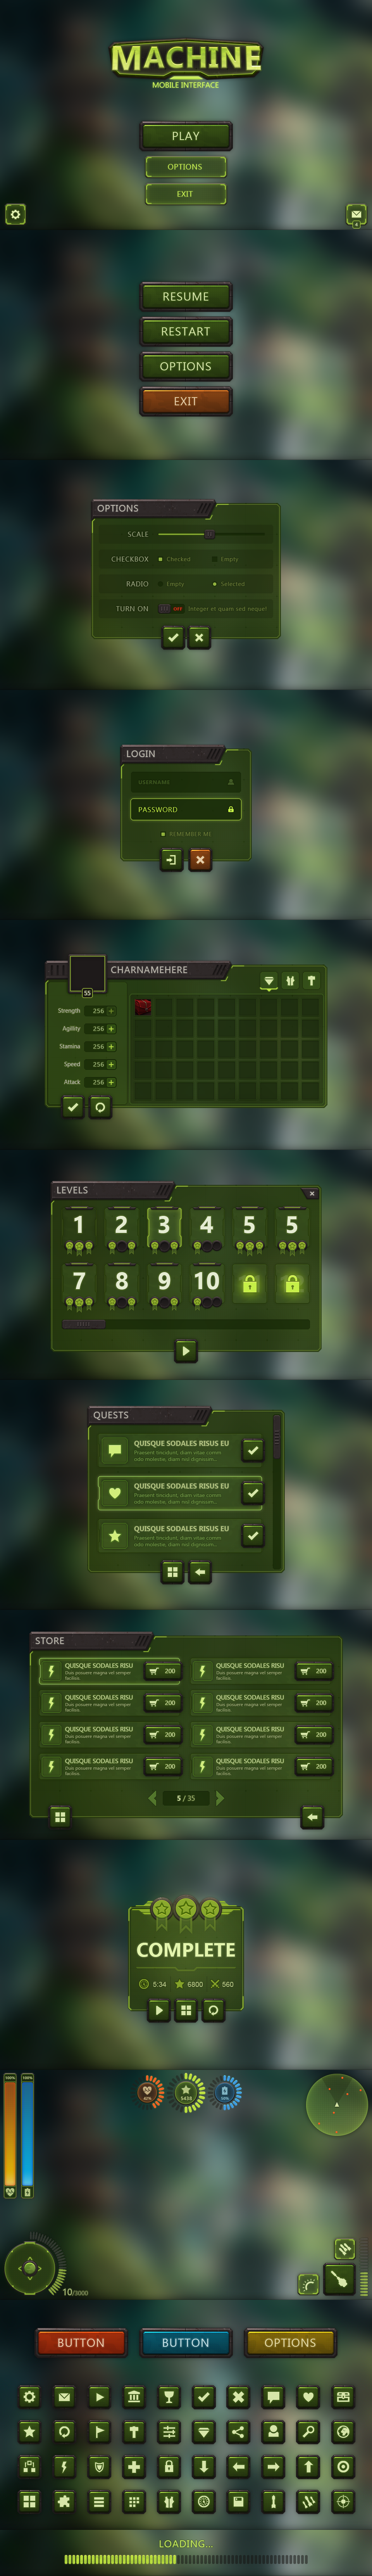 Machine Mobile UI by Evil-S